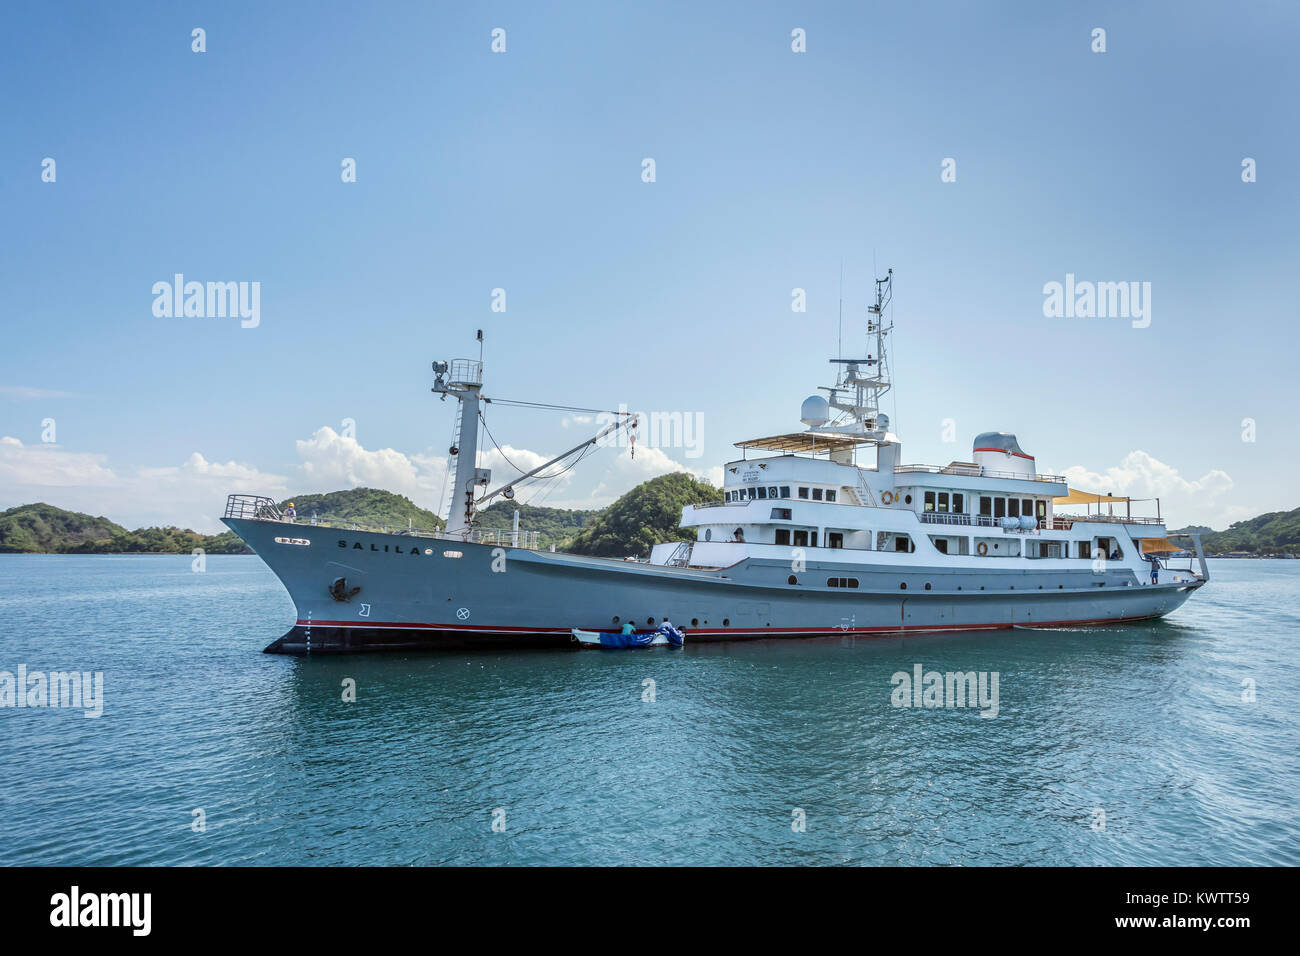 Motor launch Salila off Labuan Bajo, West Flores Island, Indonesia - Stock Image